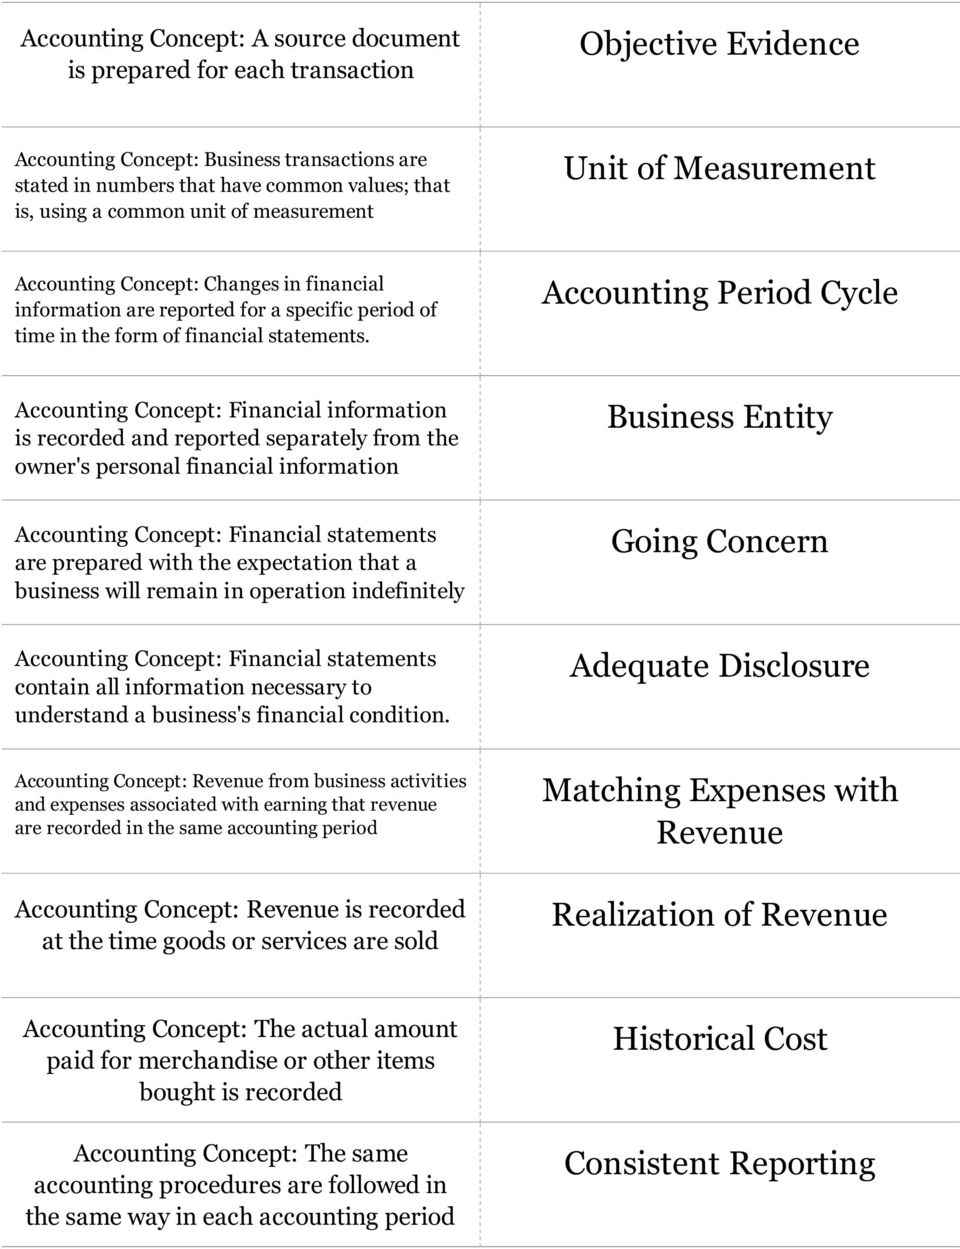 Accounting Period Cycle Accounting Concept: Financial information is recorded and reported separately from the owner's personal financial information Business Entity Accounting Concept: Financial